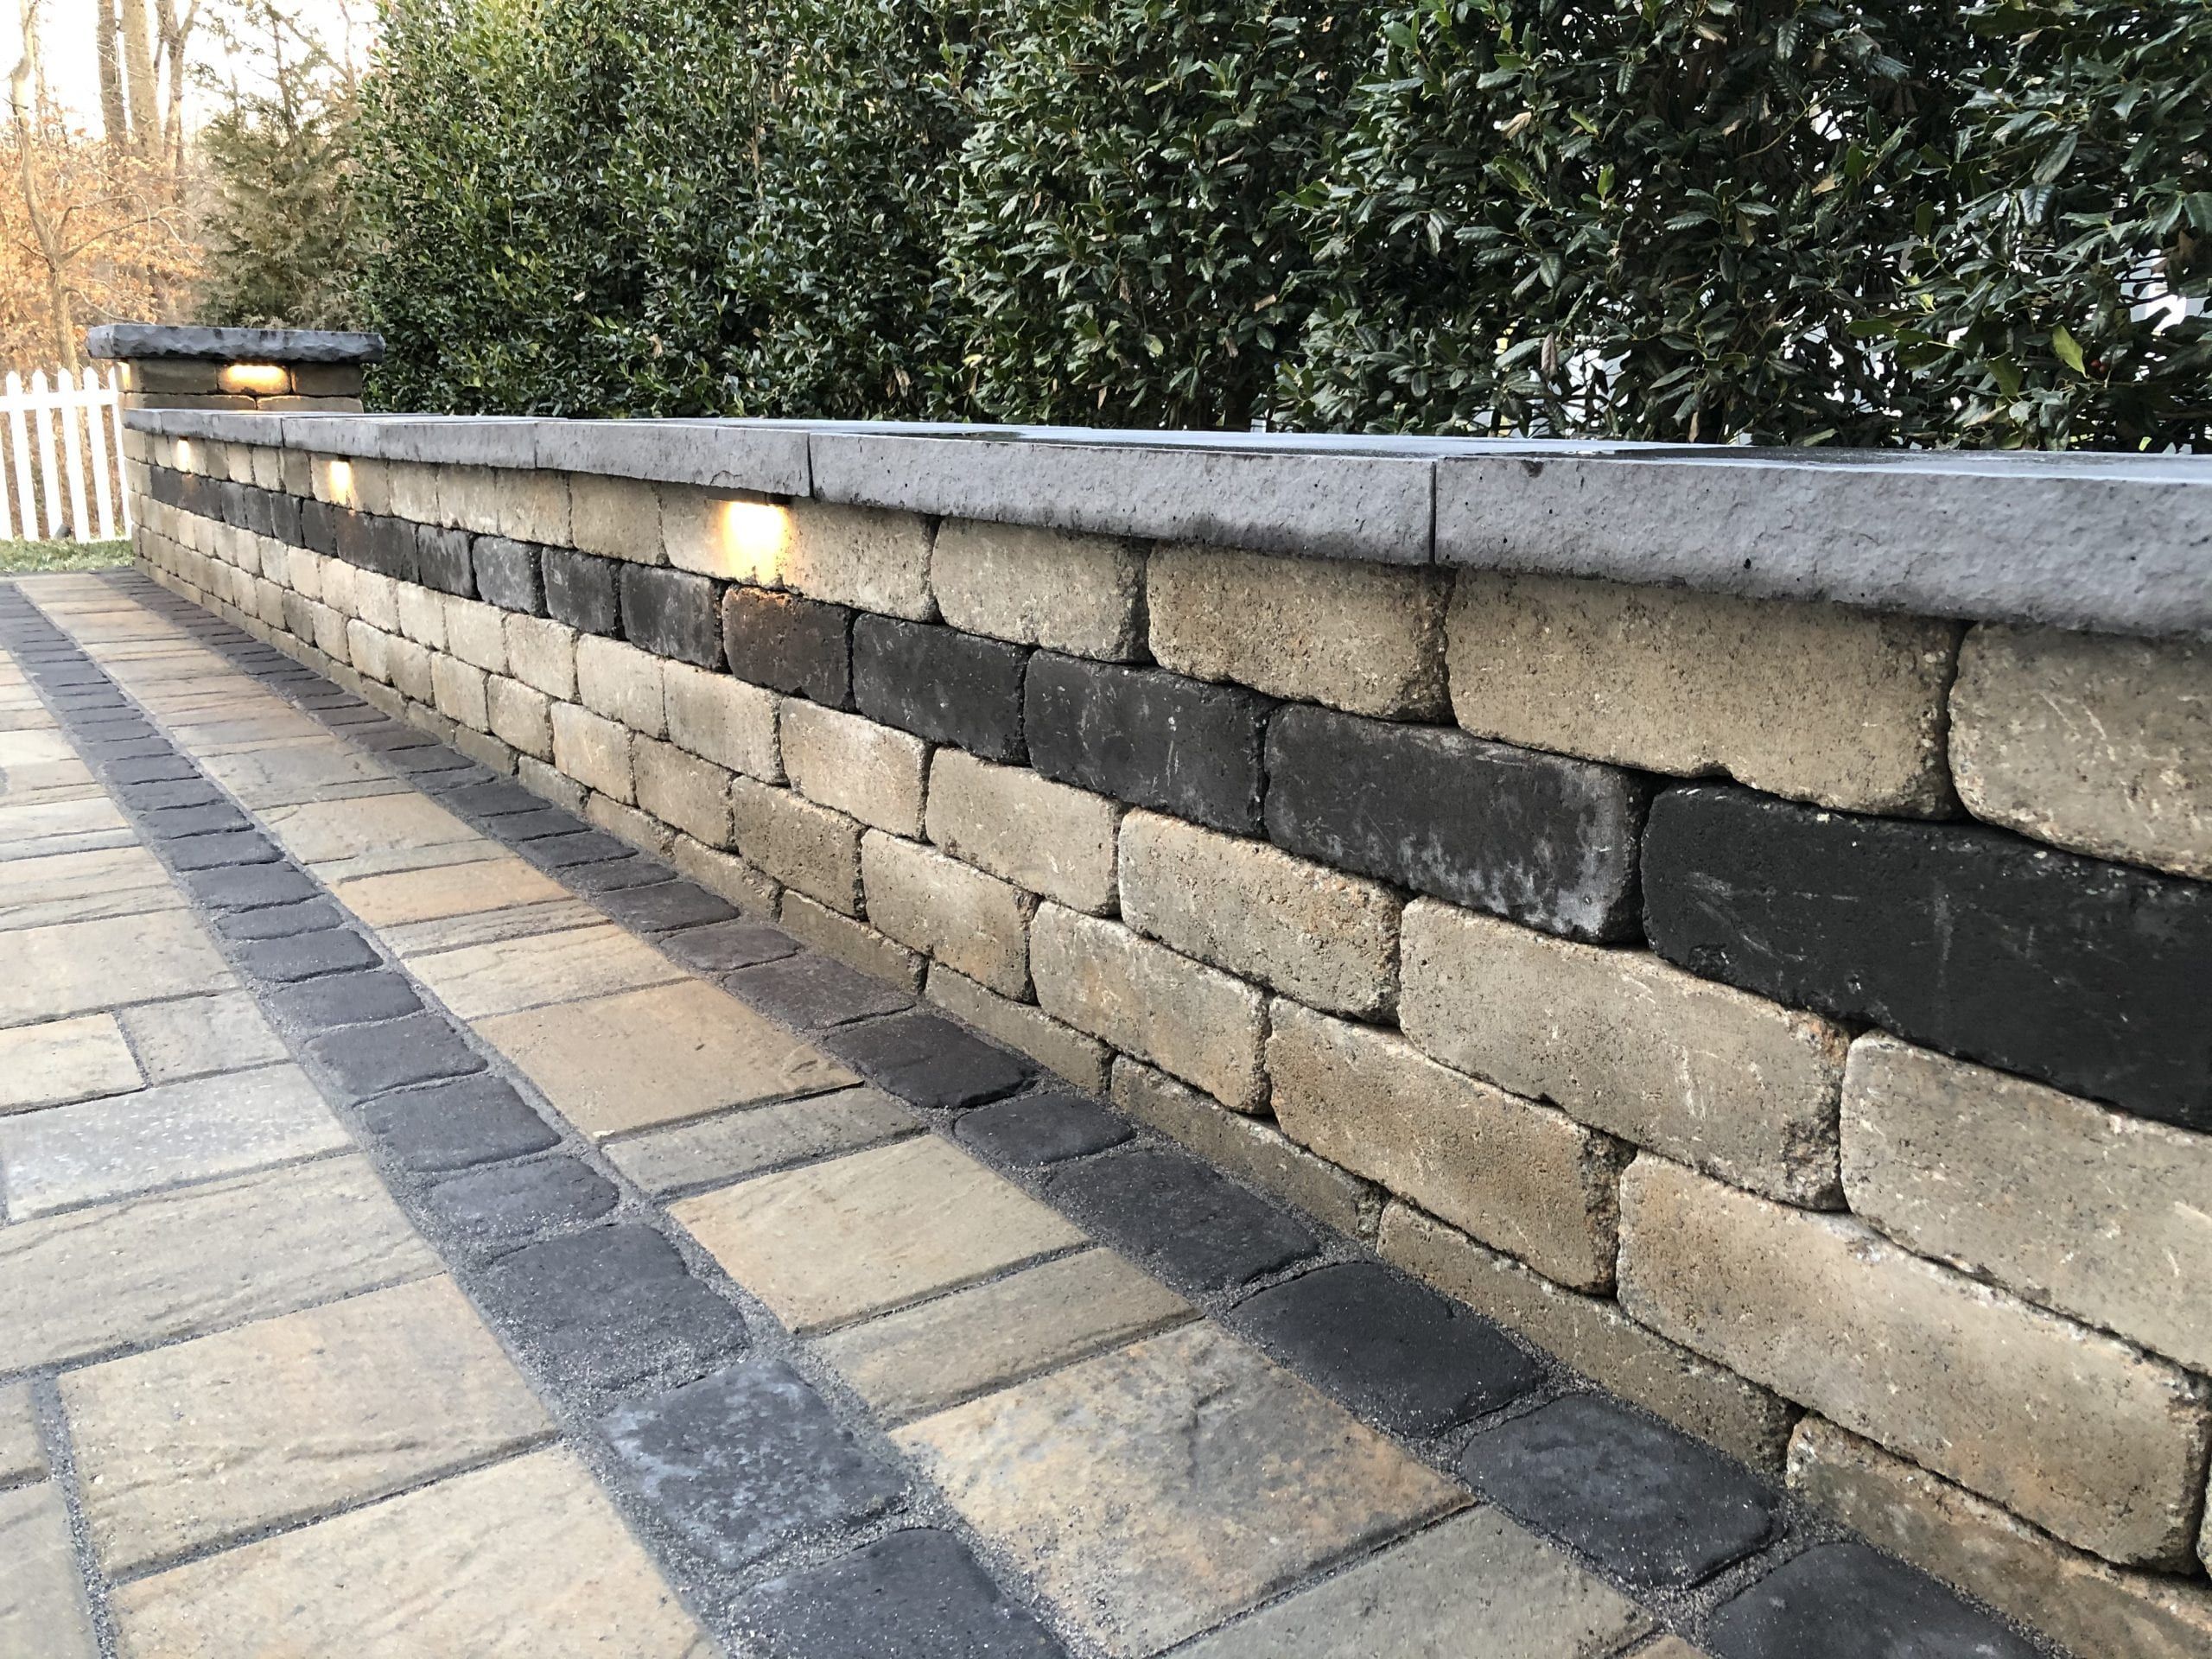 Walls and Benches, Maryland and Delaware